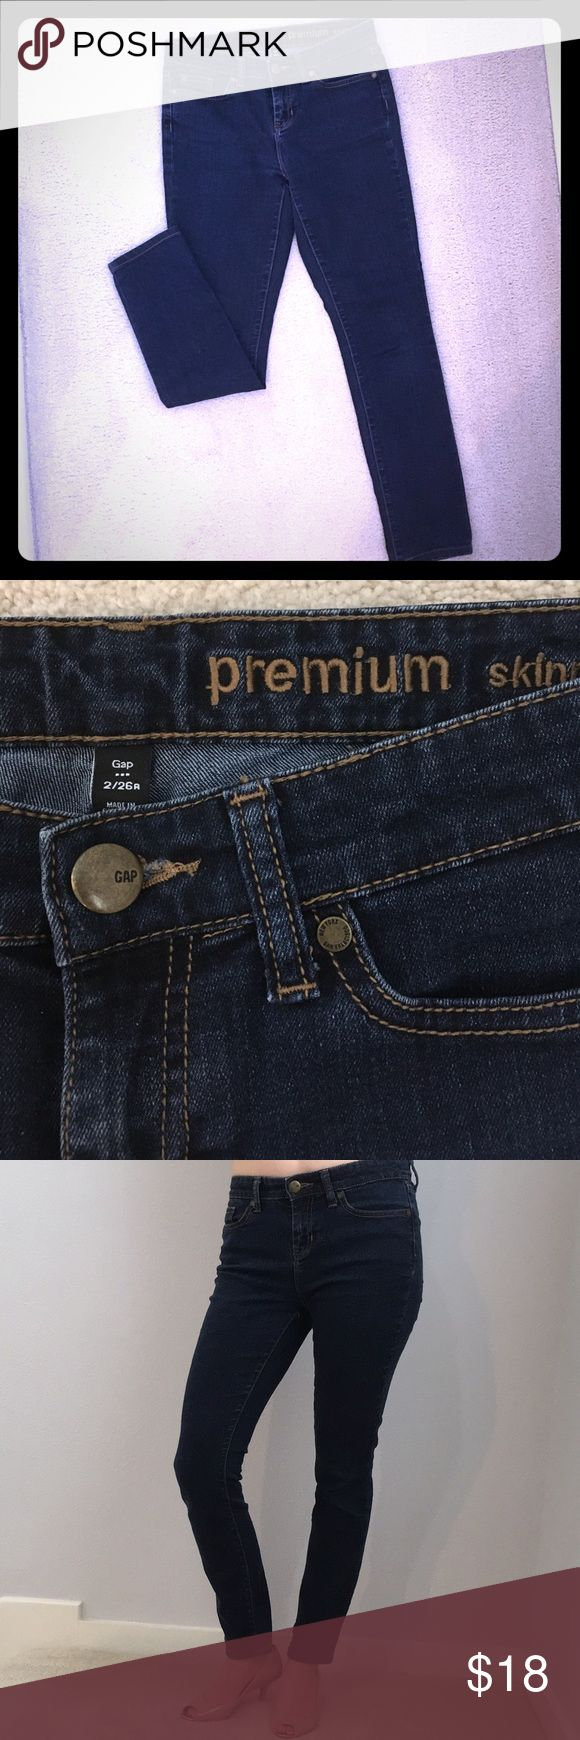 """Gap Size 2 Premium Skinny Jeans Dark Wash These dark skinny jeans are in great condition with no tears or stains. They are size 2 with a 26 inch waist and 27 inch inseam. These jeans are perfect for petite sizes, ladies under 5'4"""", or tall ladies looking for ankle-length jeans. They are stretchy, comfortable, and form fitting. 84% cotton, 15% polyester, and 1% spandex. Machine washable. GAP Jeans Skinny"""